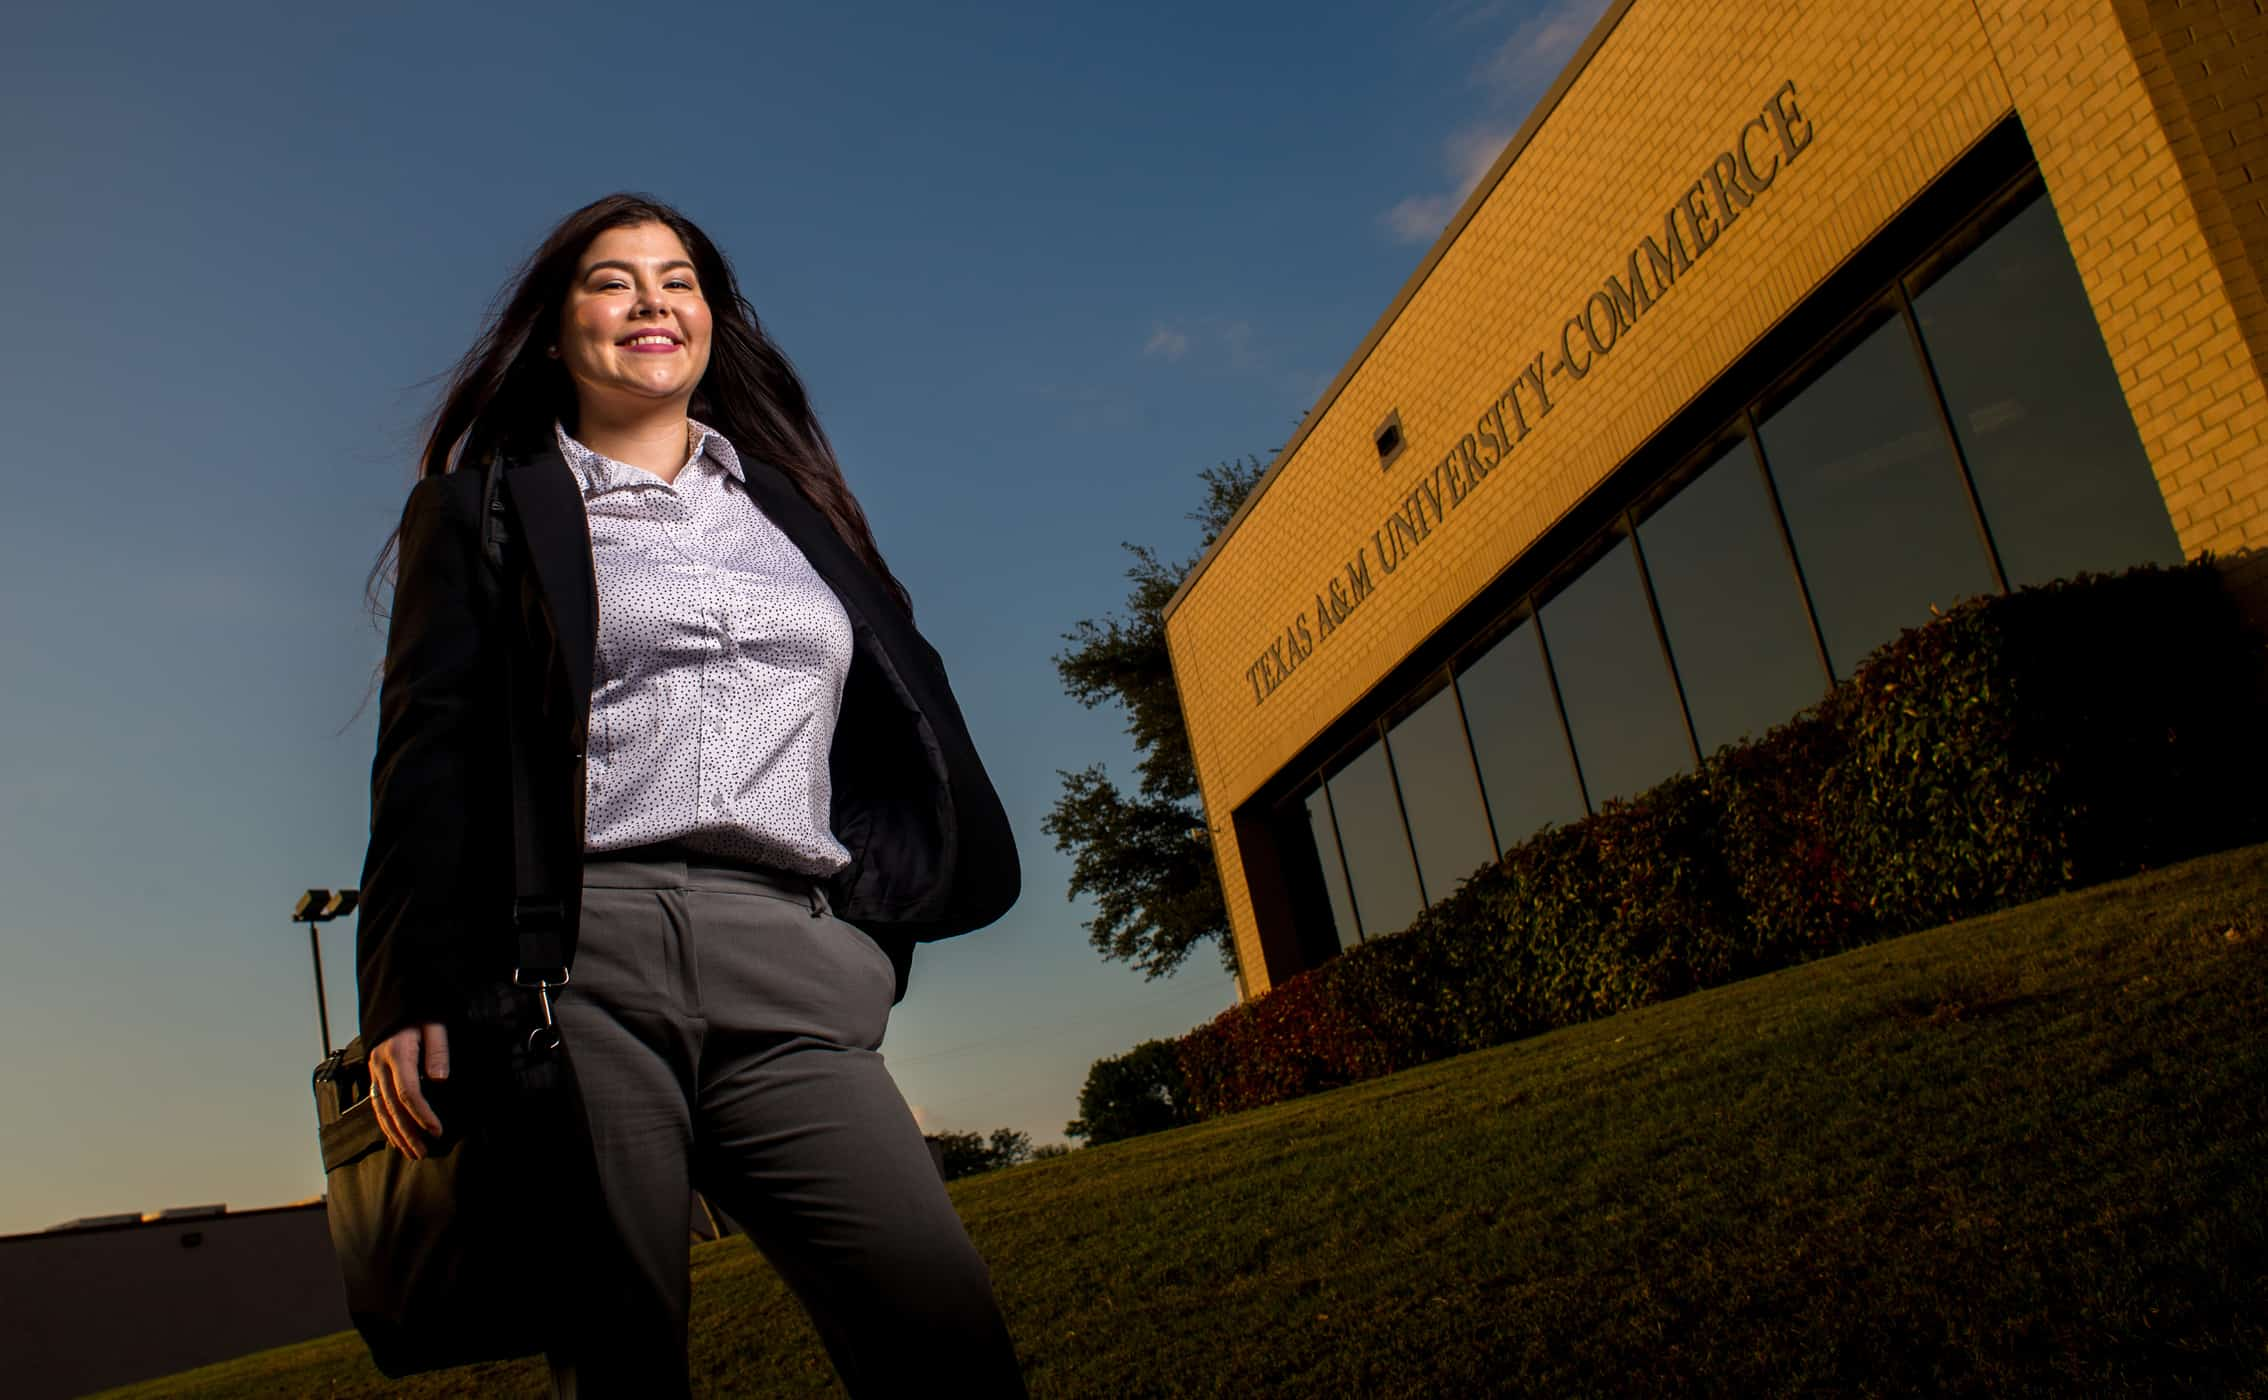 student smiling background 'Texas A & M university-commerce building'